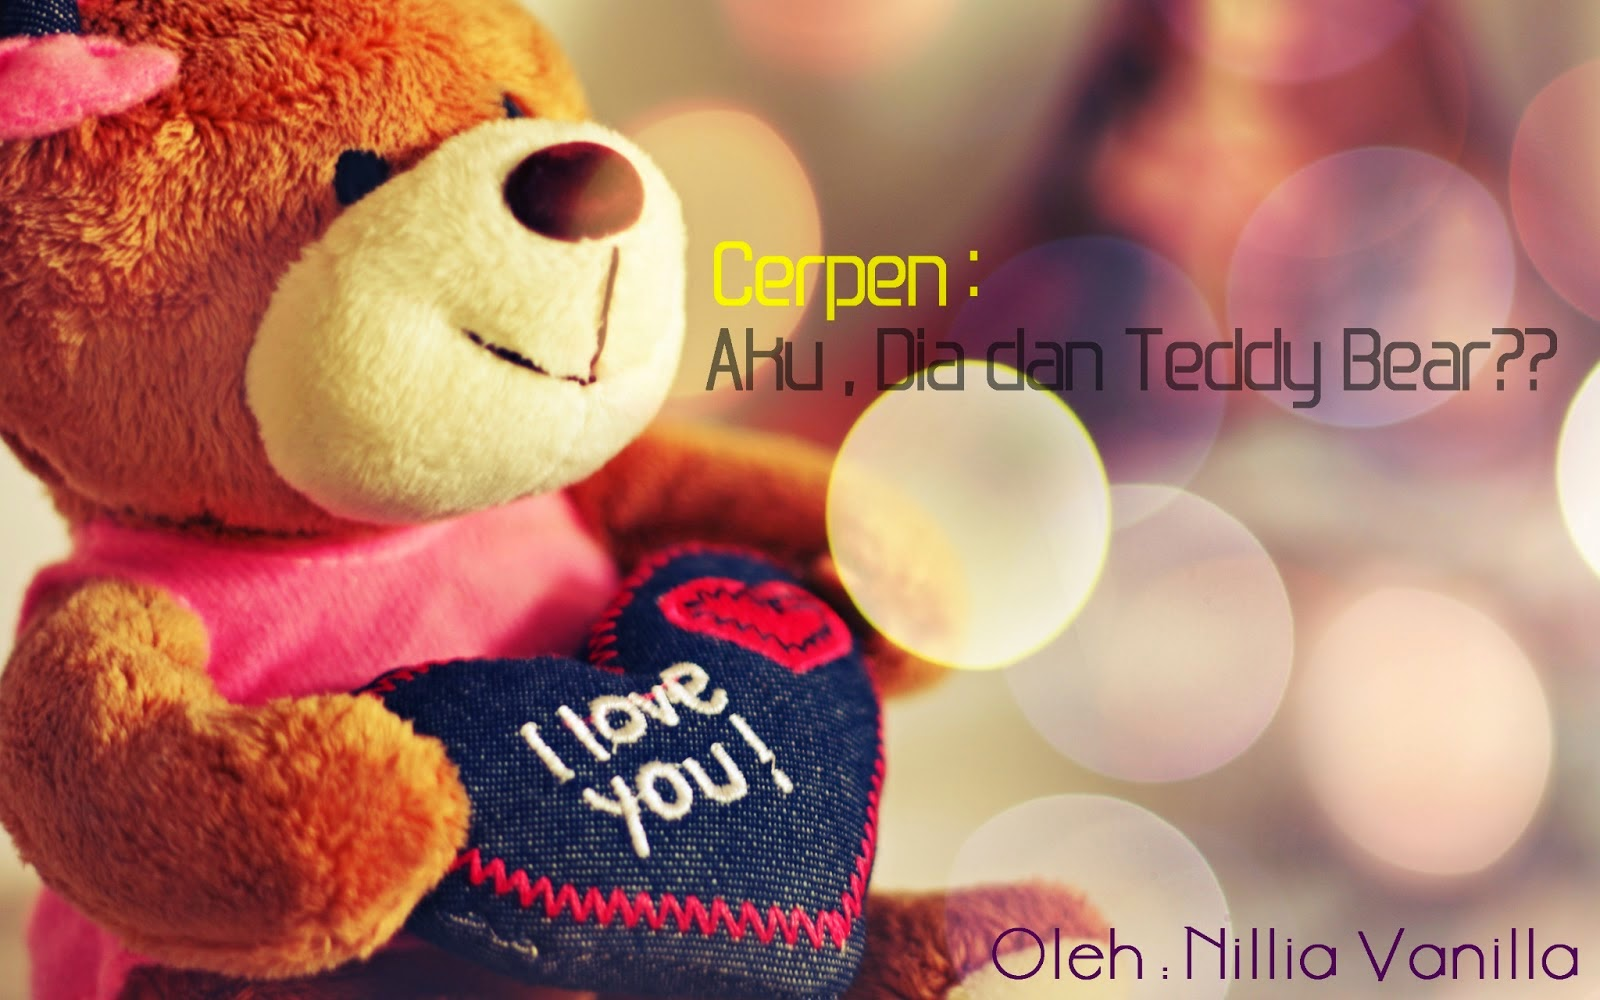 http://nilliavanilla.blogspot.com/search/label/Aku%20Dia%20Dan%20Teddy%20Bear%3F%3F